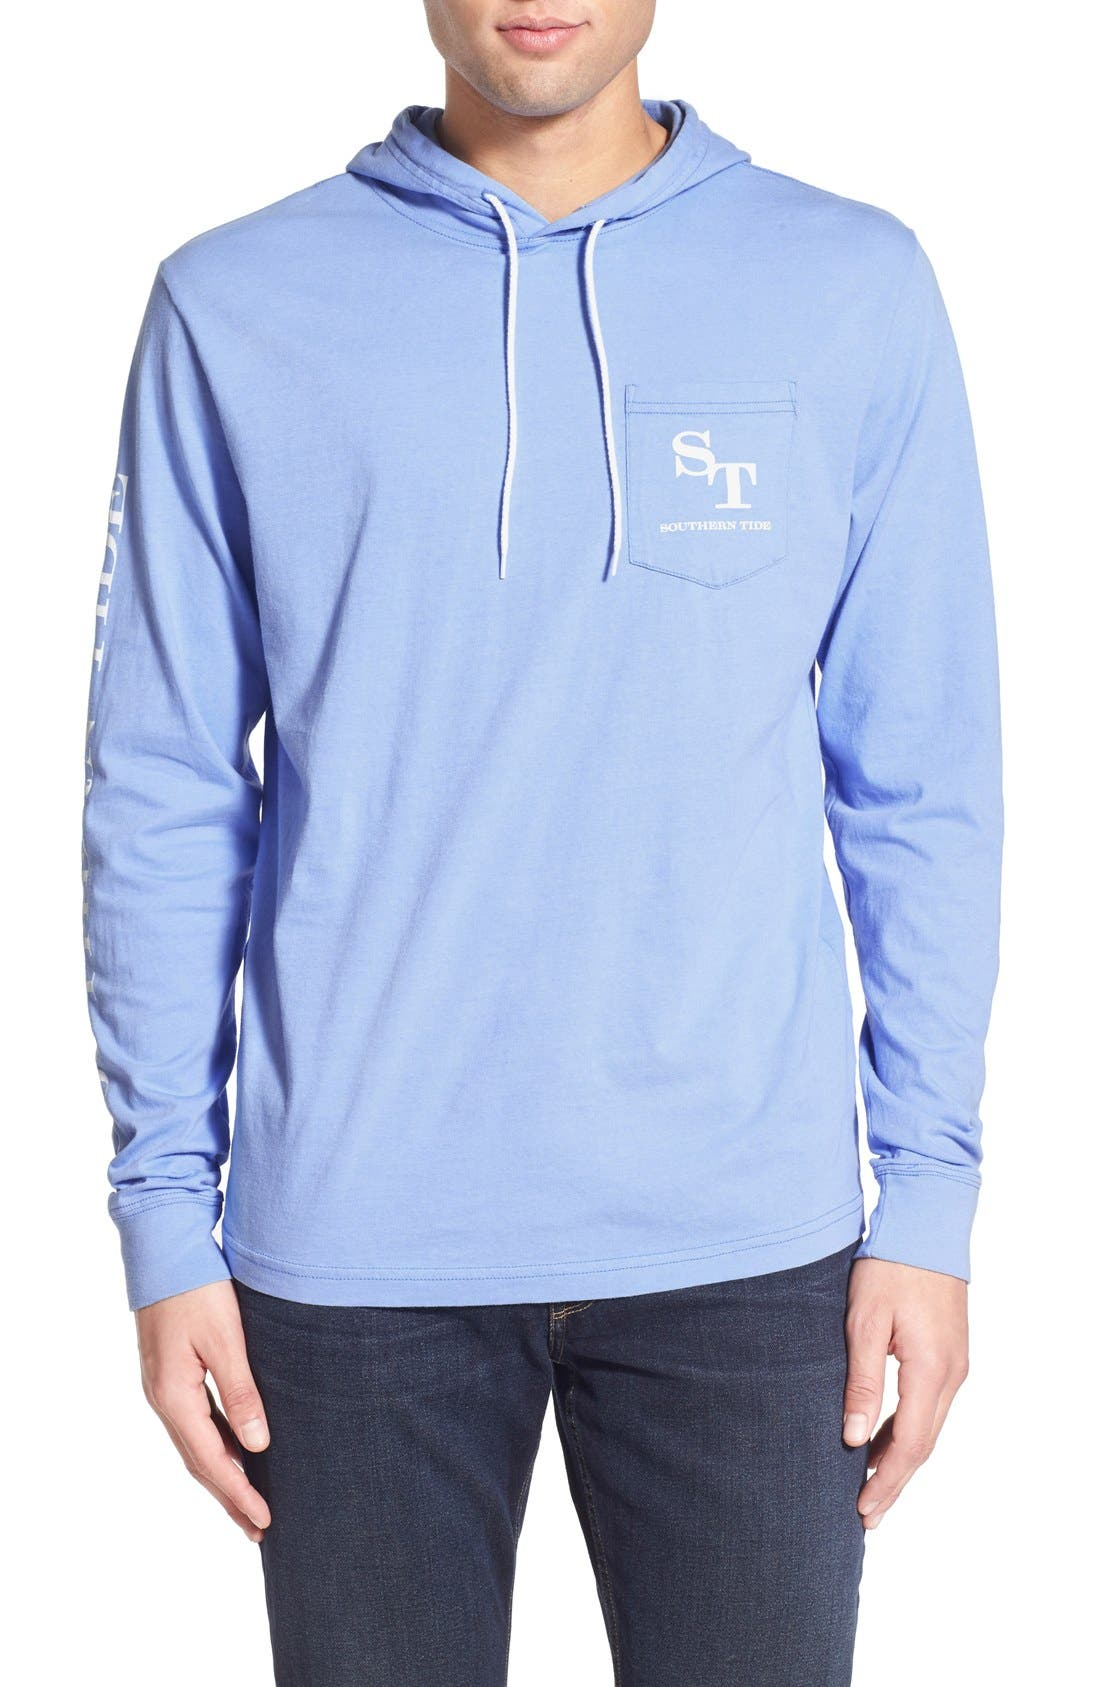 Main Image - Southern Tide Graphic Hooded Long Sleeve T-Shirt